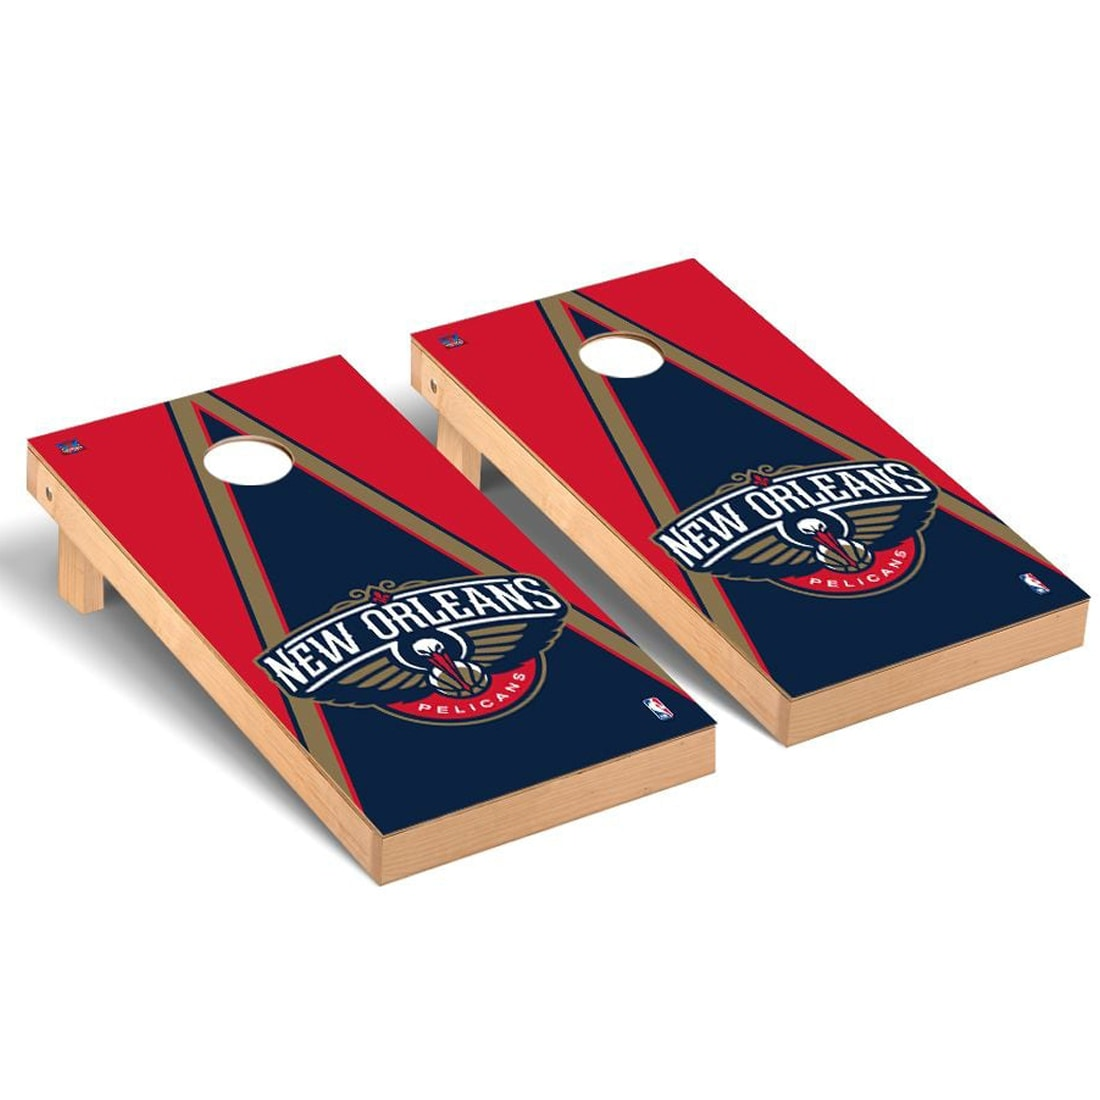 New Orleans Pelicans 2' x 4' Triangle Museum Cornhole Board Tailgate Toss Set